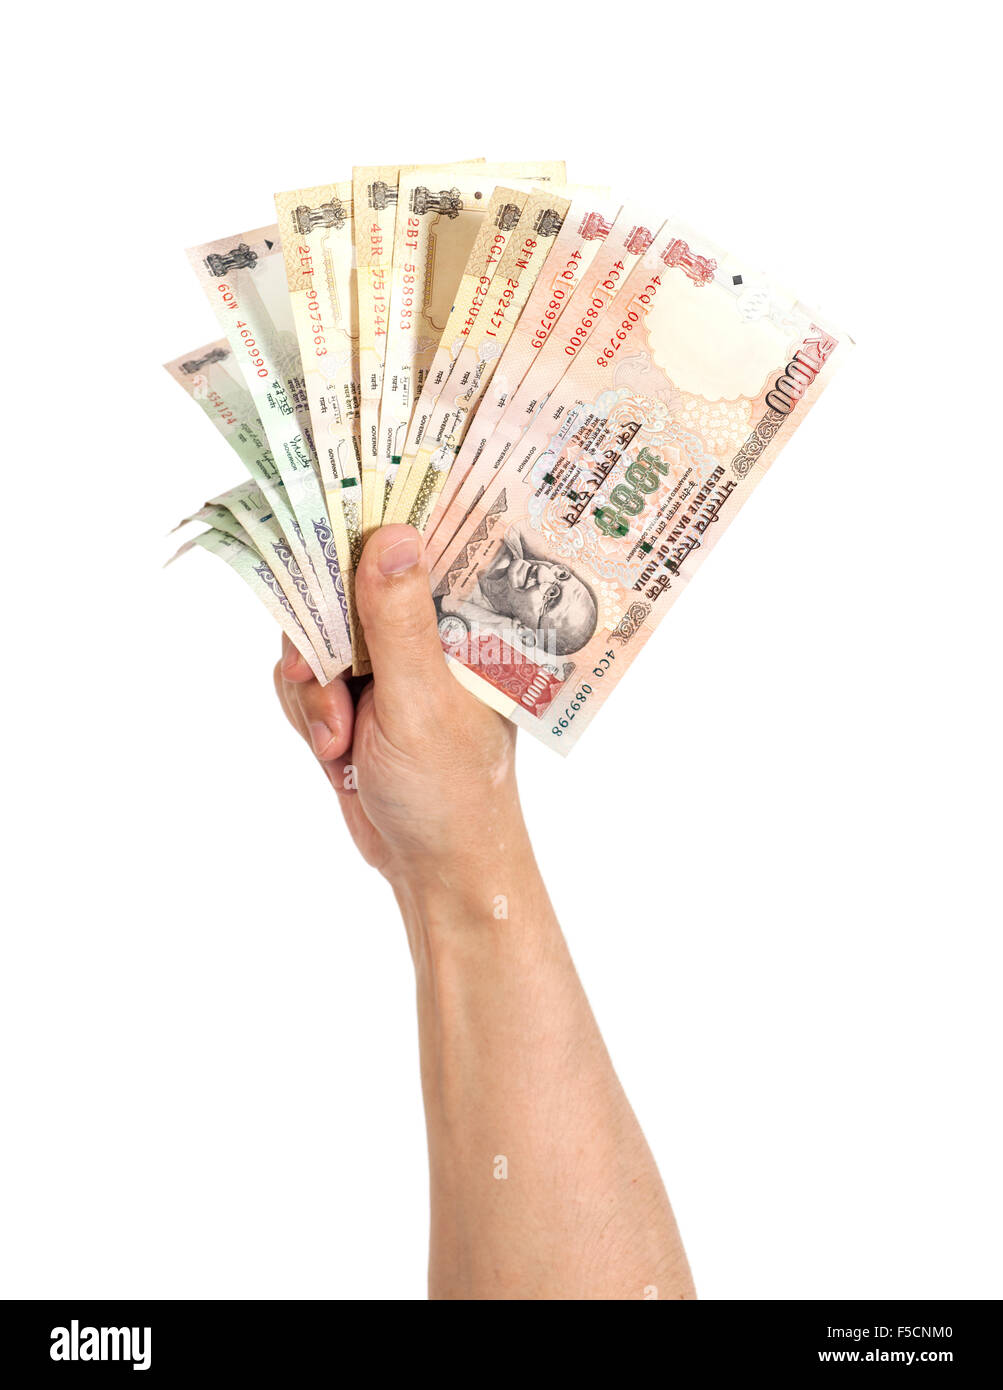 Hand with Indian thousand rupee notes isolated - Stock Image